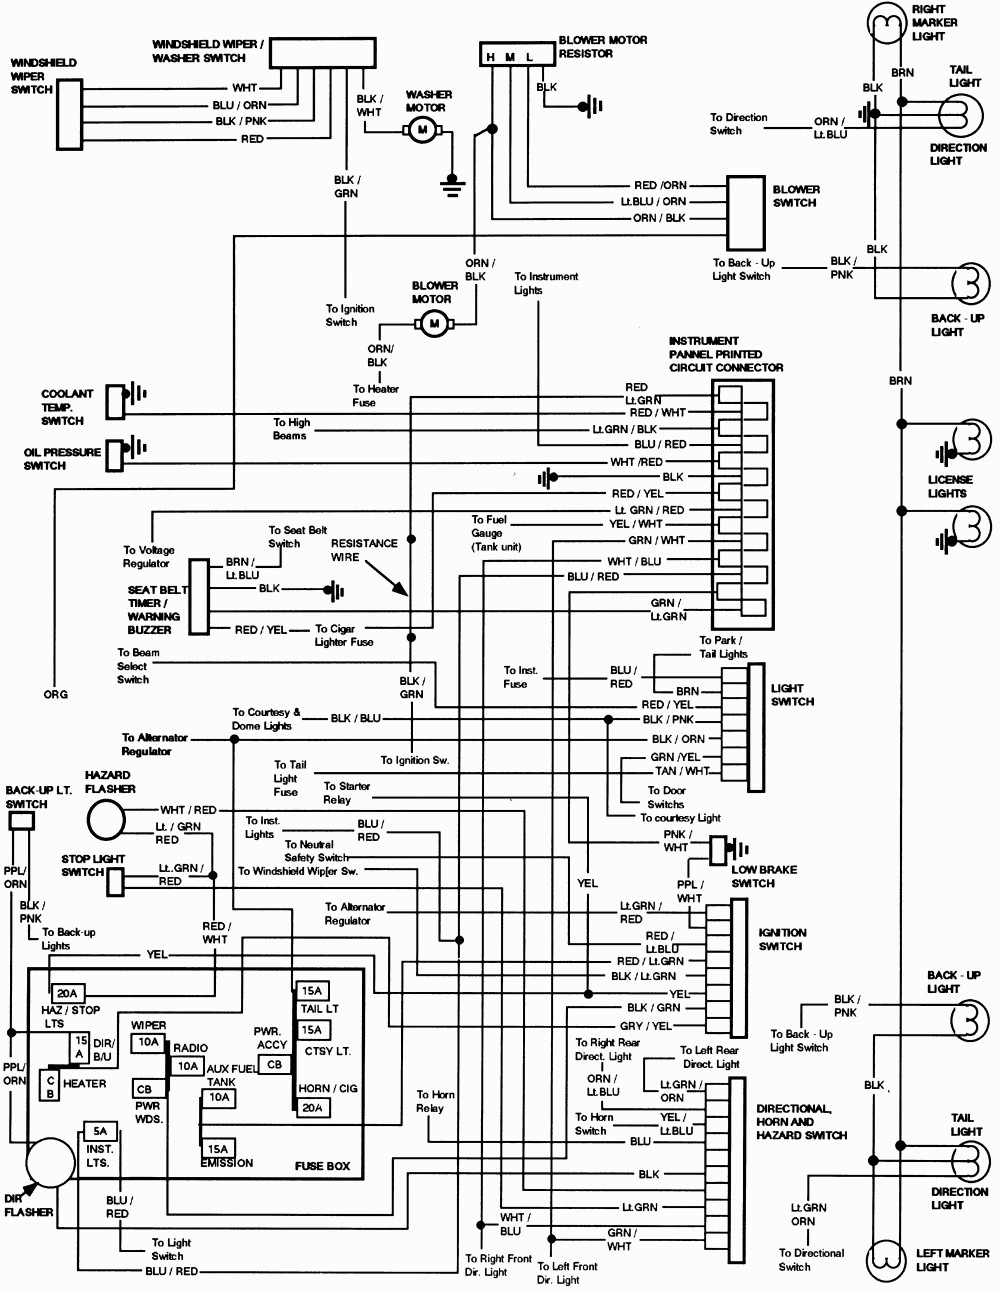 get 95 ford f150 ignition wiring diagram download